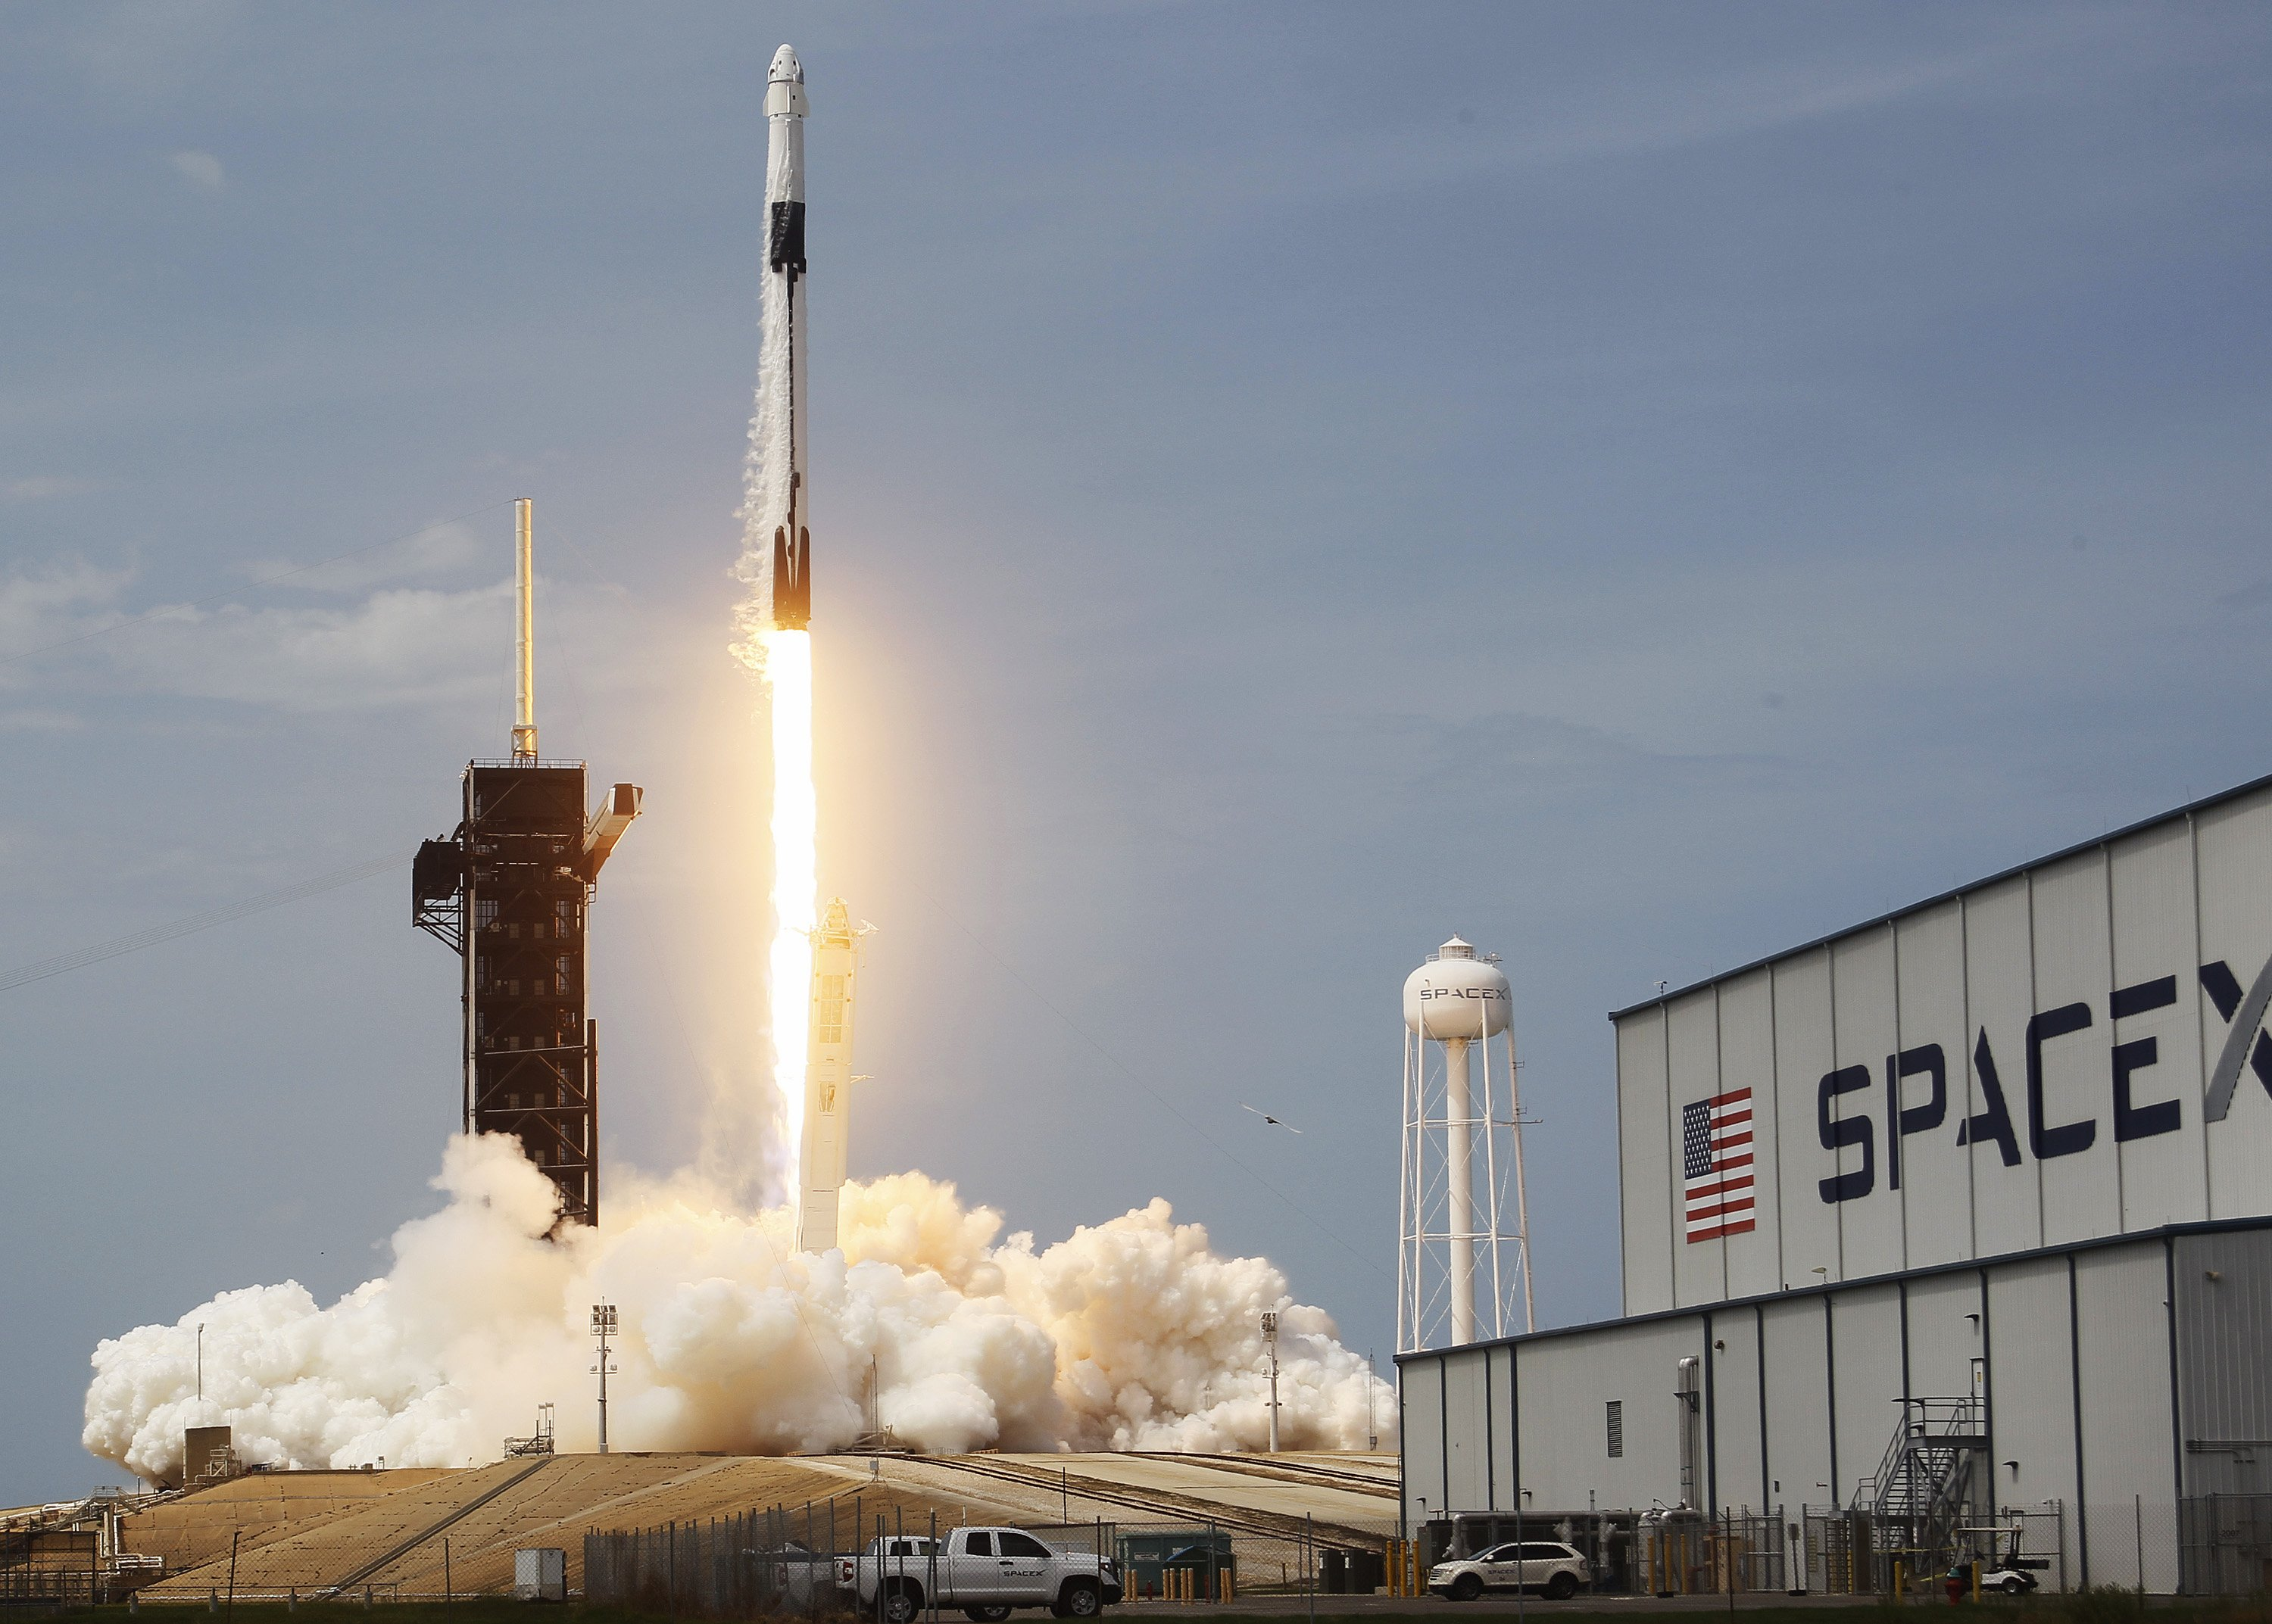 The SpaceX Falcon 9 rocket with the manned Crew Dragon spacecraft attached taking off at the Kennedy Space Center in Cape Canaveral, Florida | Photo: Joe Raedle/Getty Images